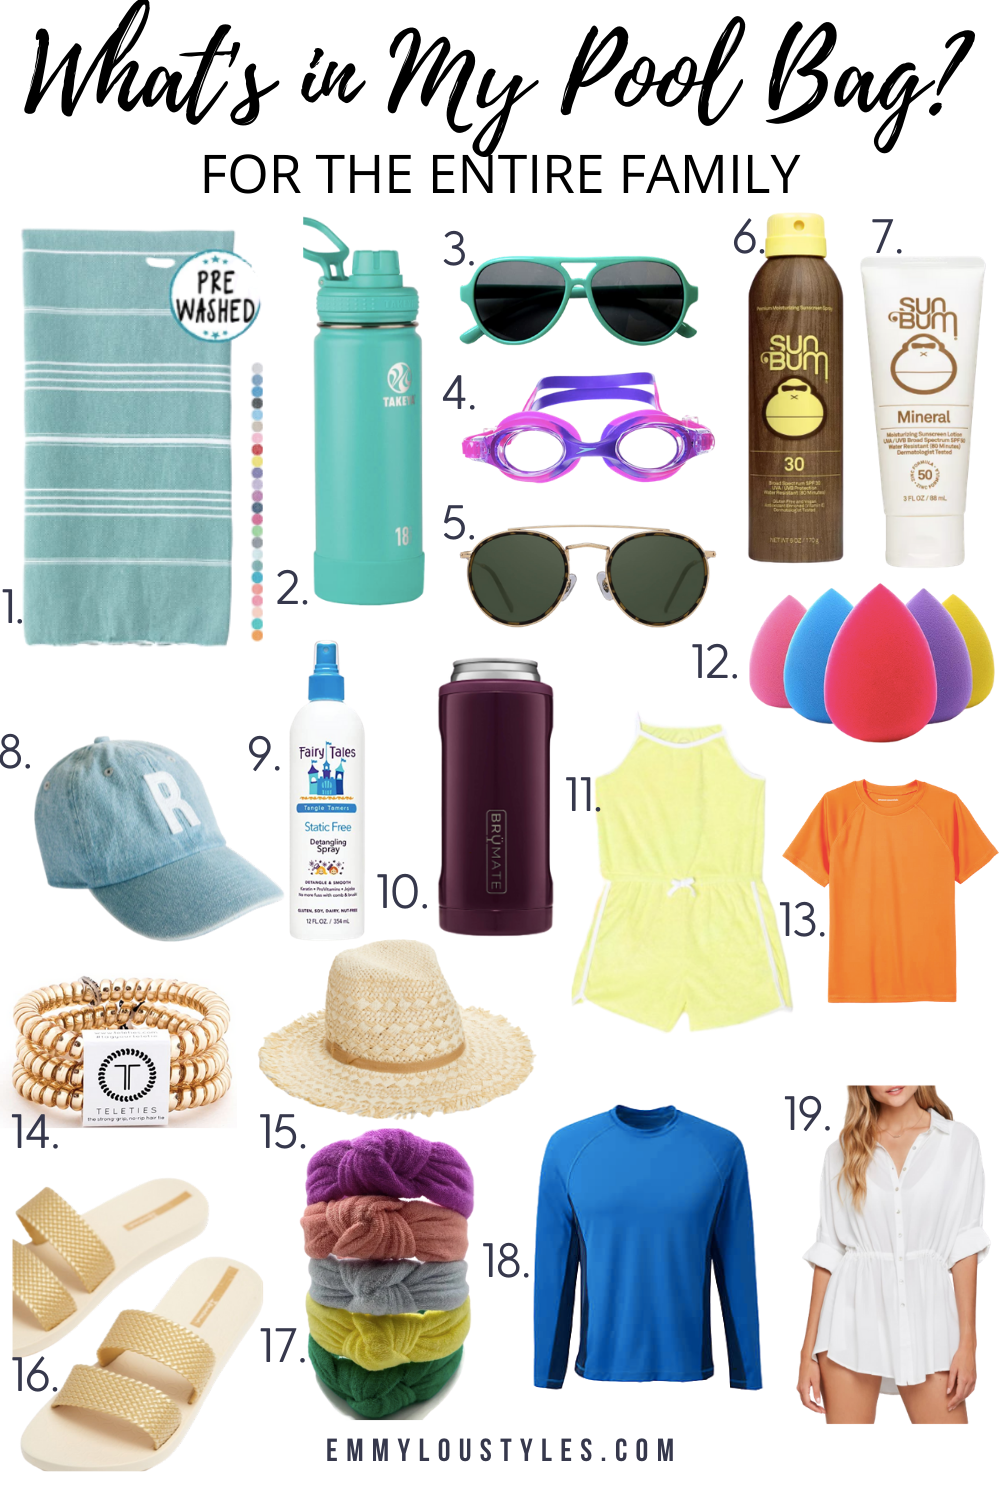 What's in my Pool bag